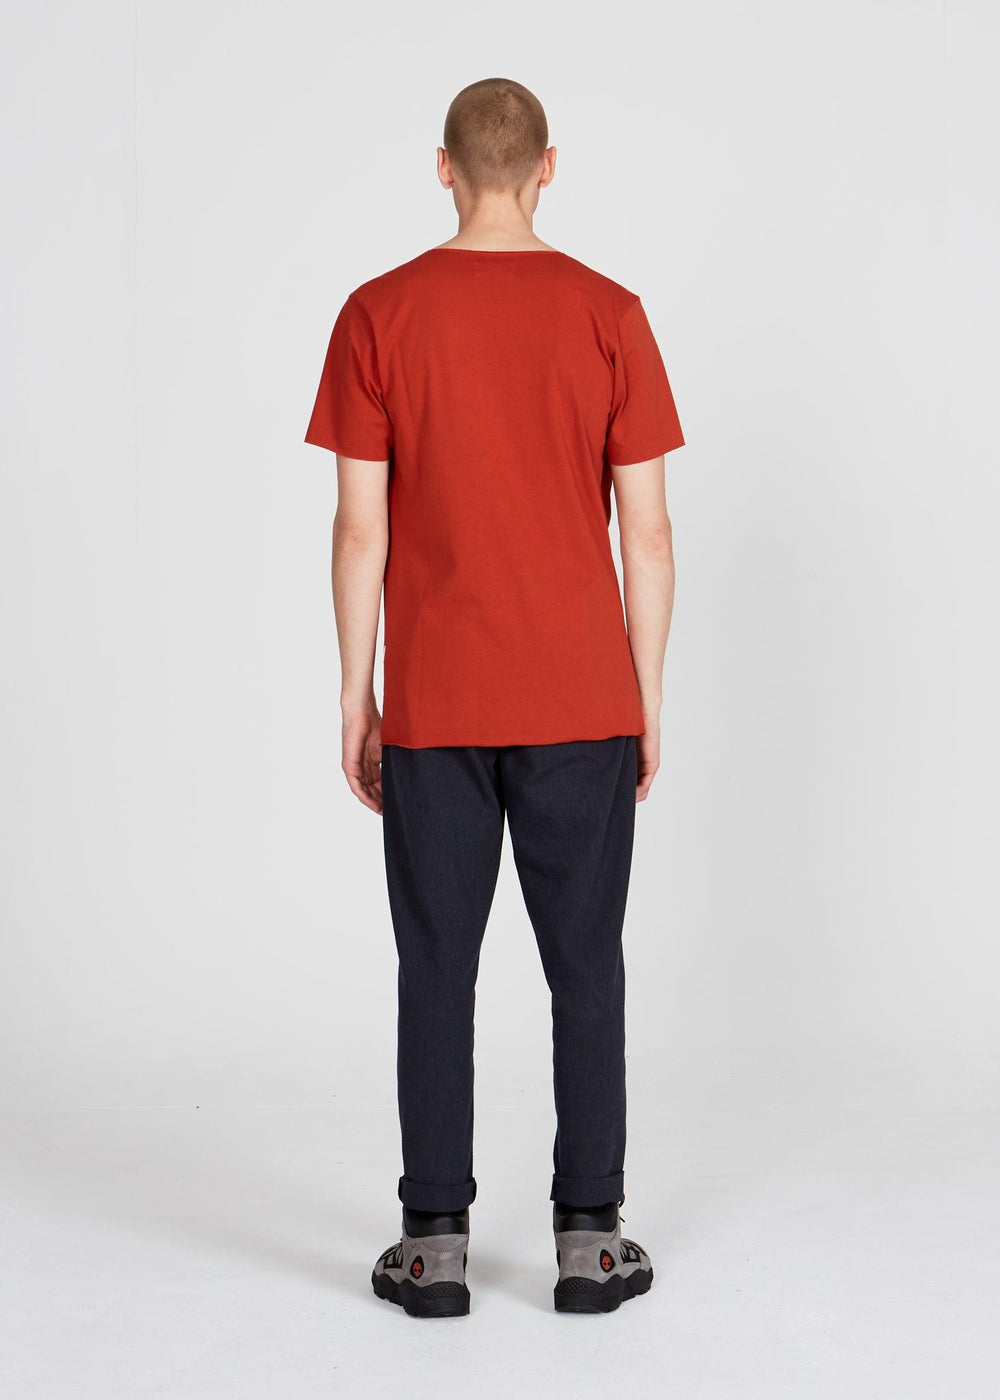 Givn BERLIN New Foundland T-Shirt Red Clay